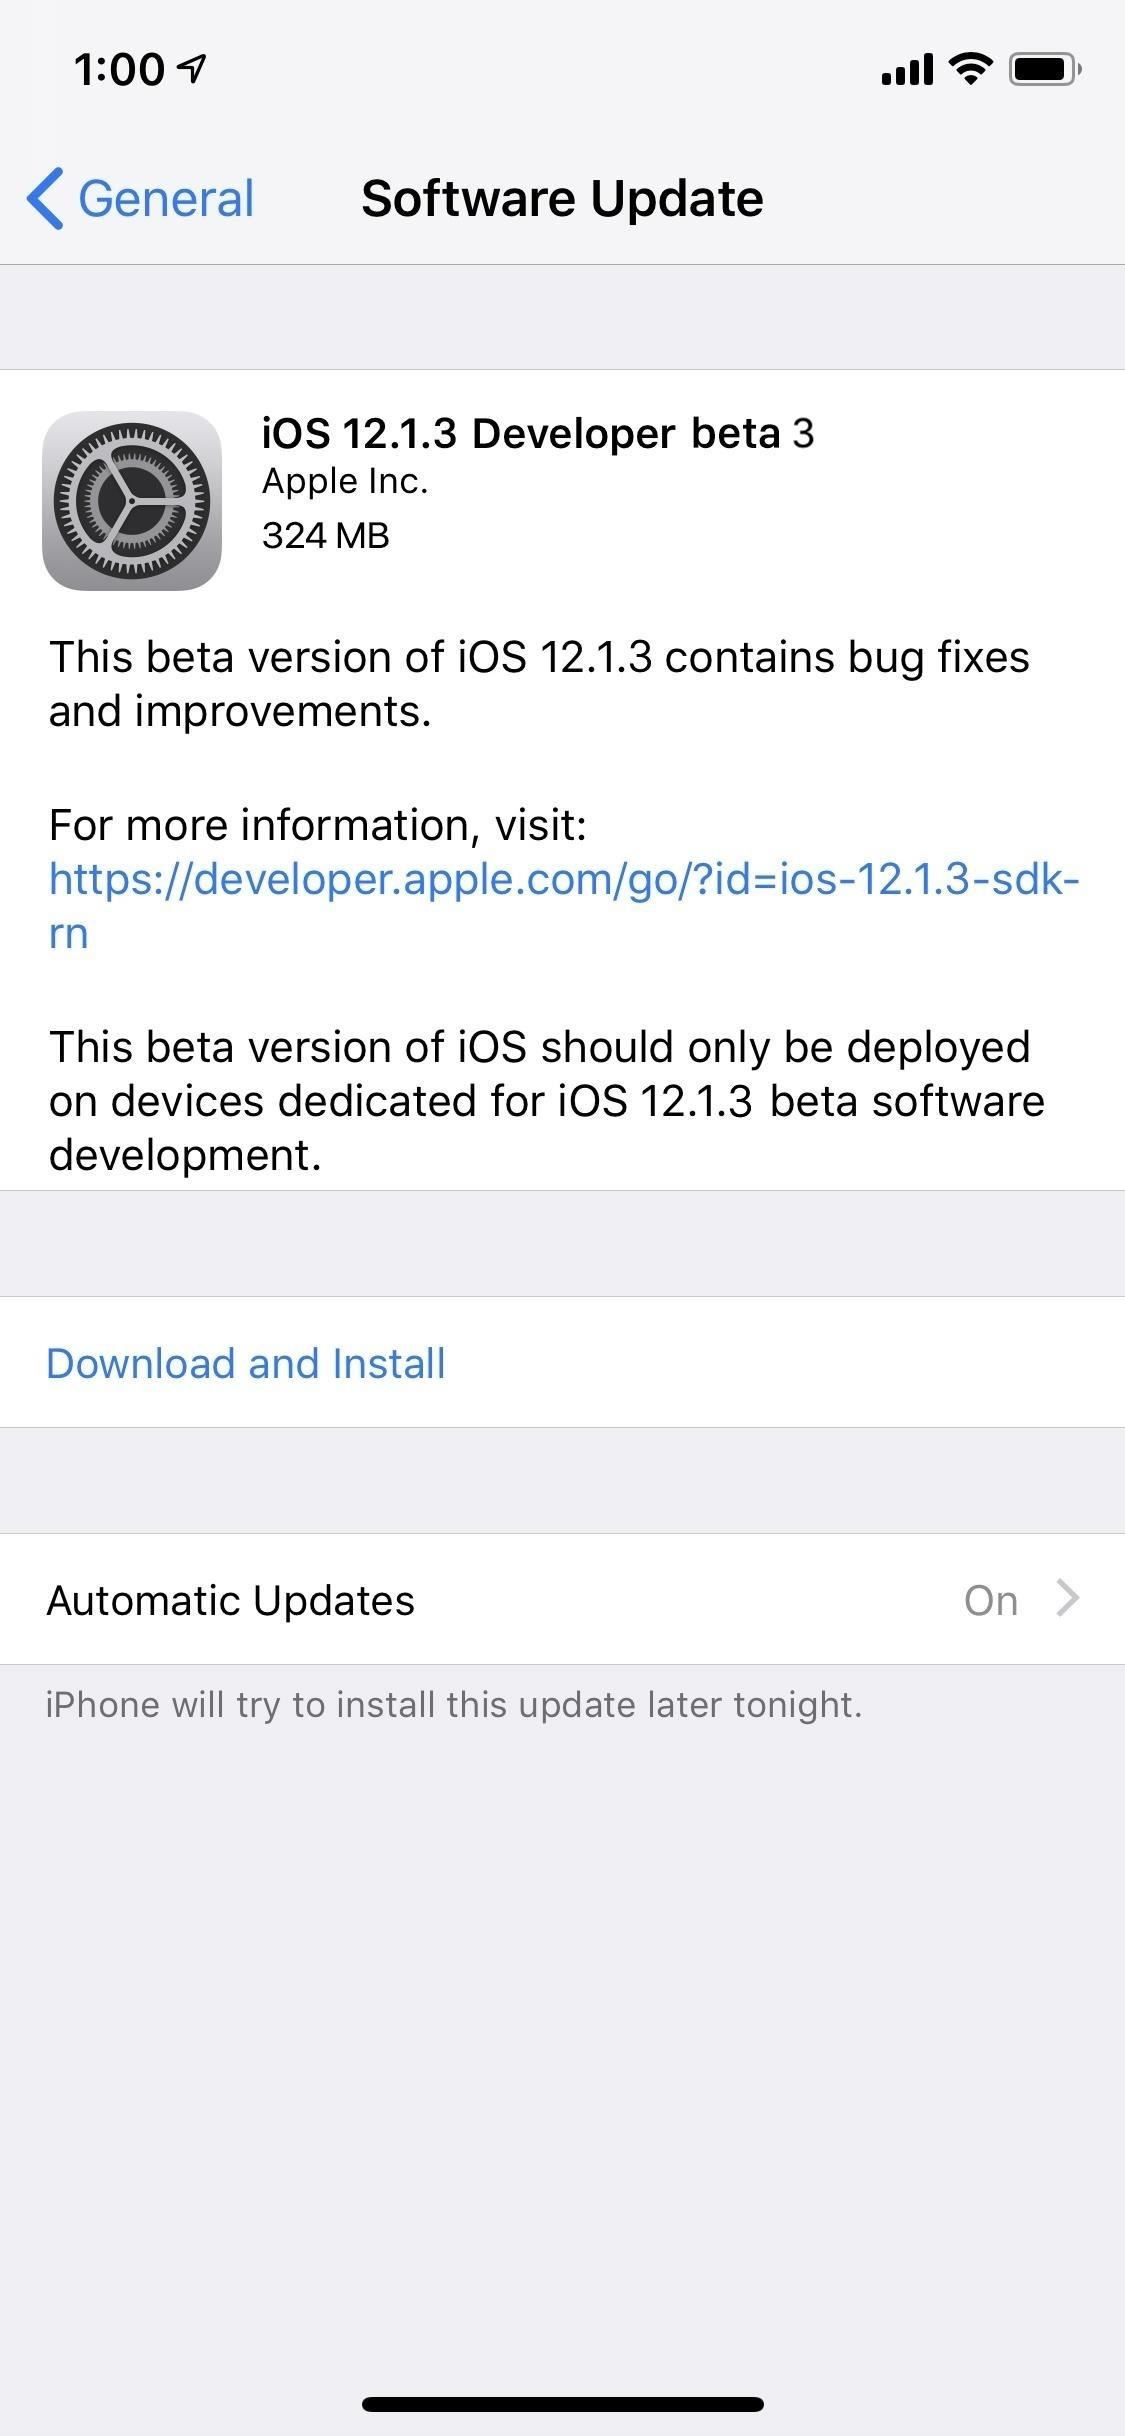 Apple has just released iOS 12.1.3 for developer Beta 3 for software testers.